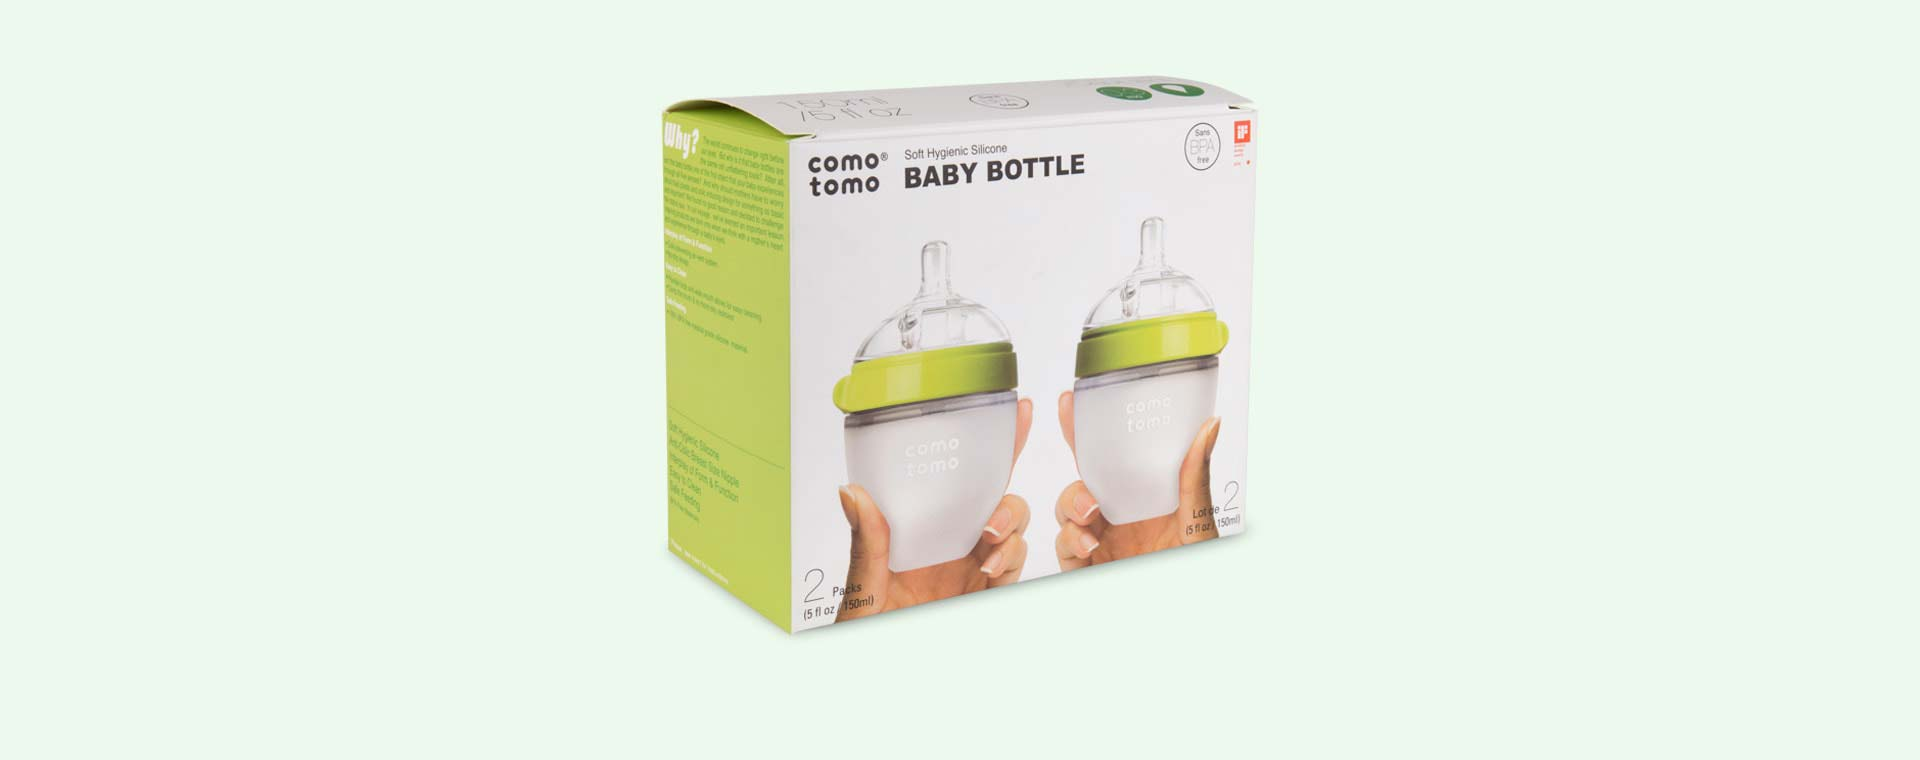 Green Comotomo 5oz Twin Bottle